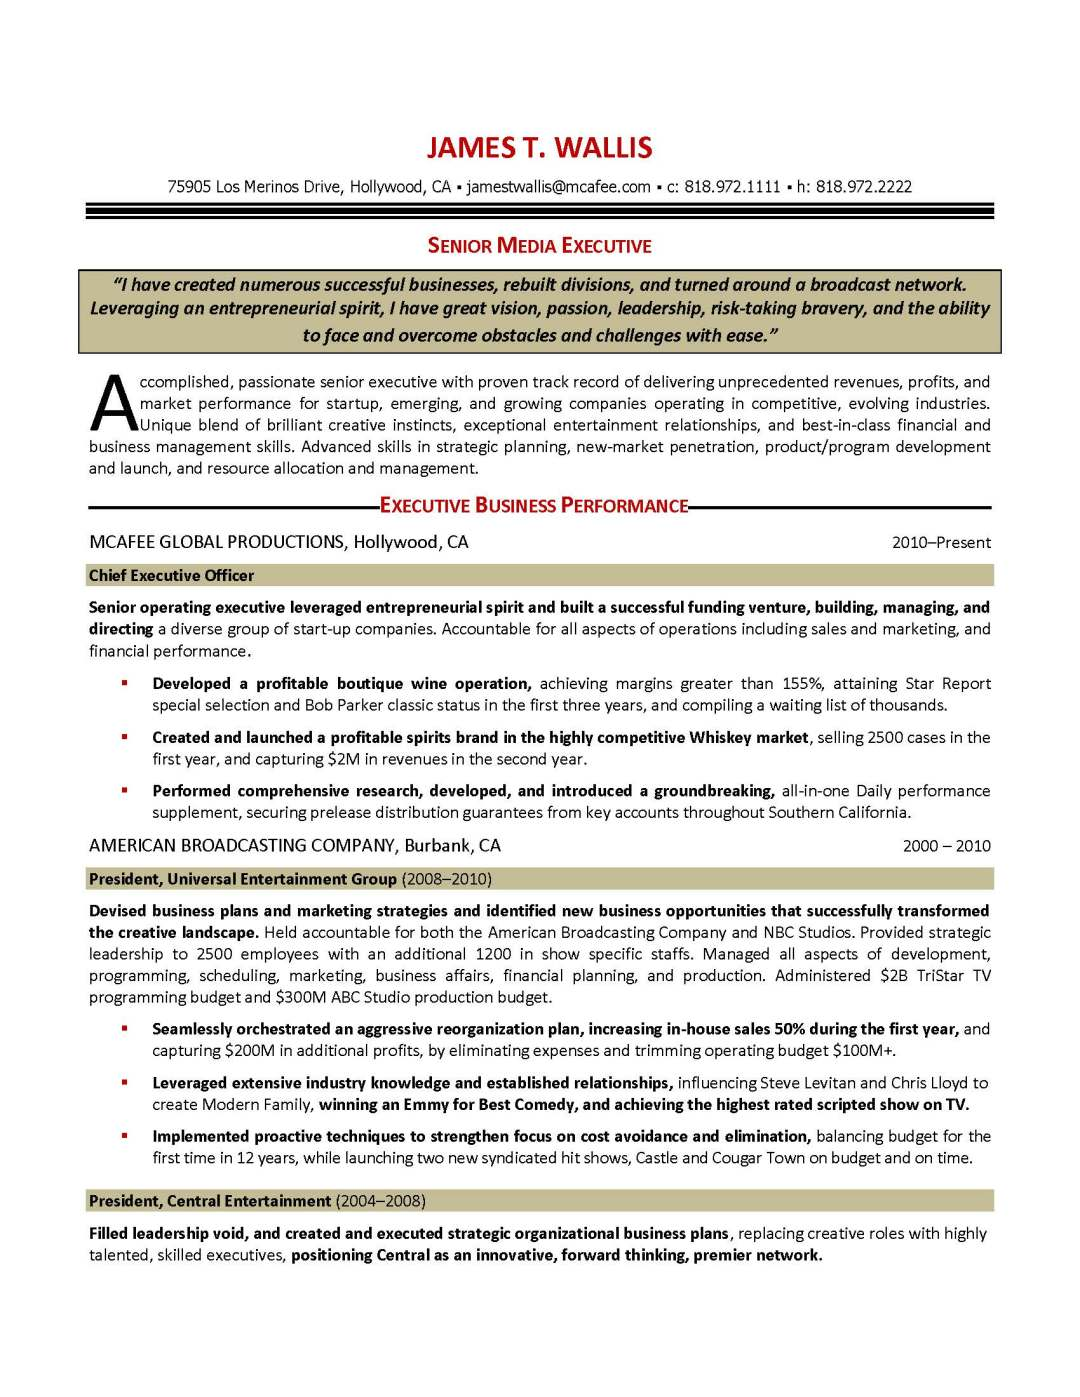 Resume samples program finance manager fp a devops sample - Chief marketing officer job description ...